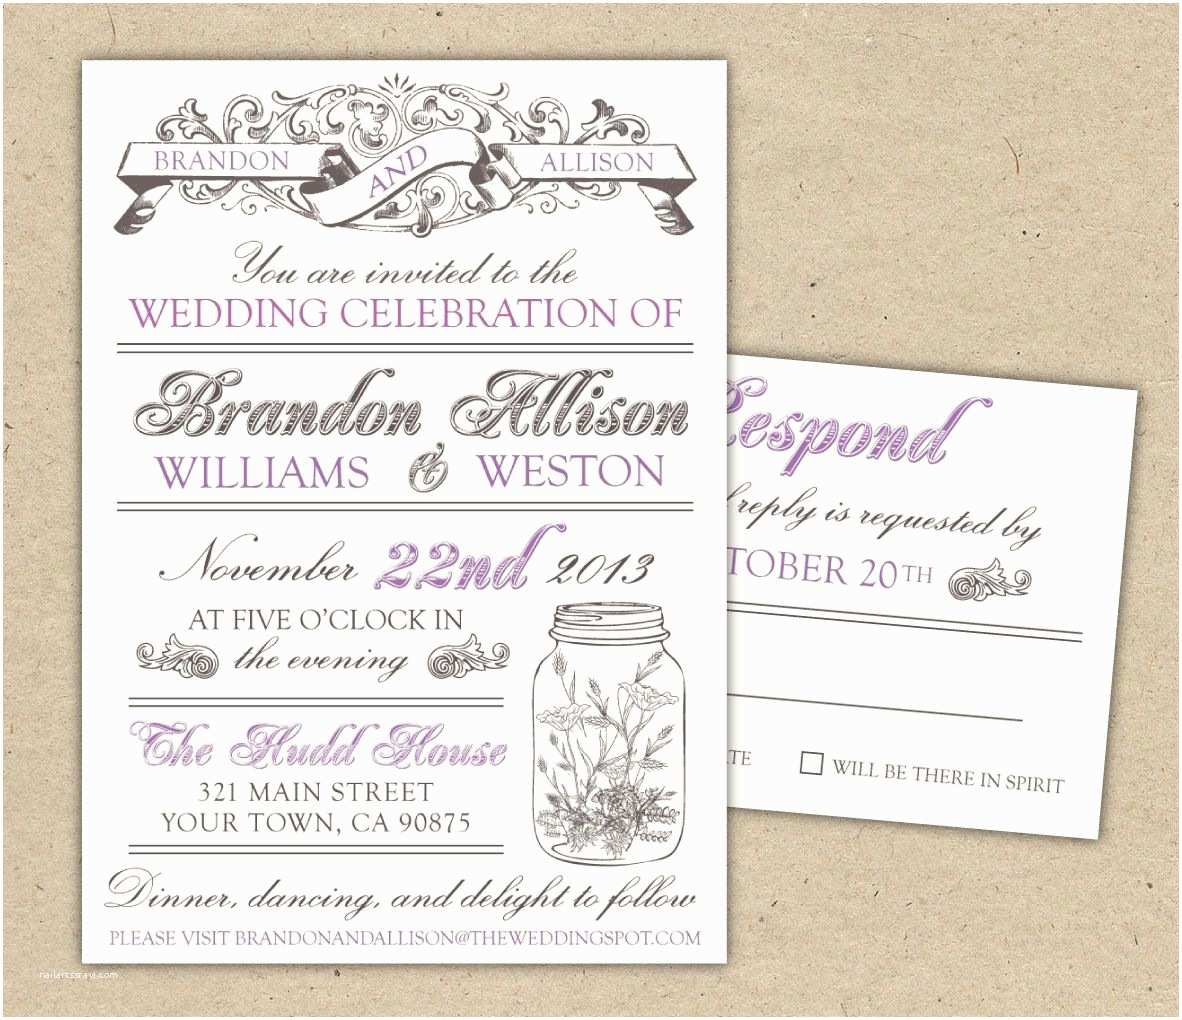 Online Editable Wedding Invitation Cards Free Download Free Templates For